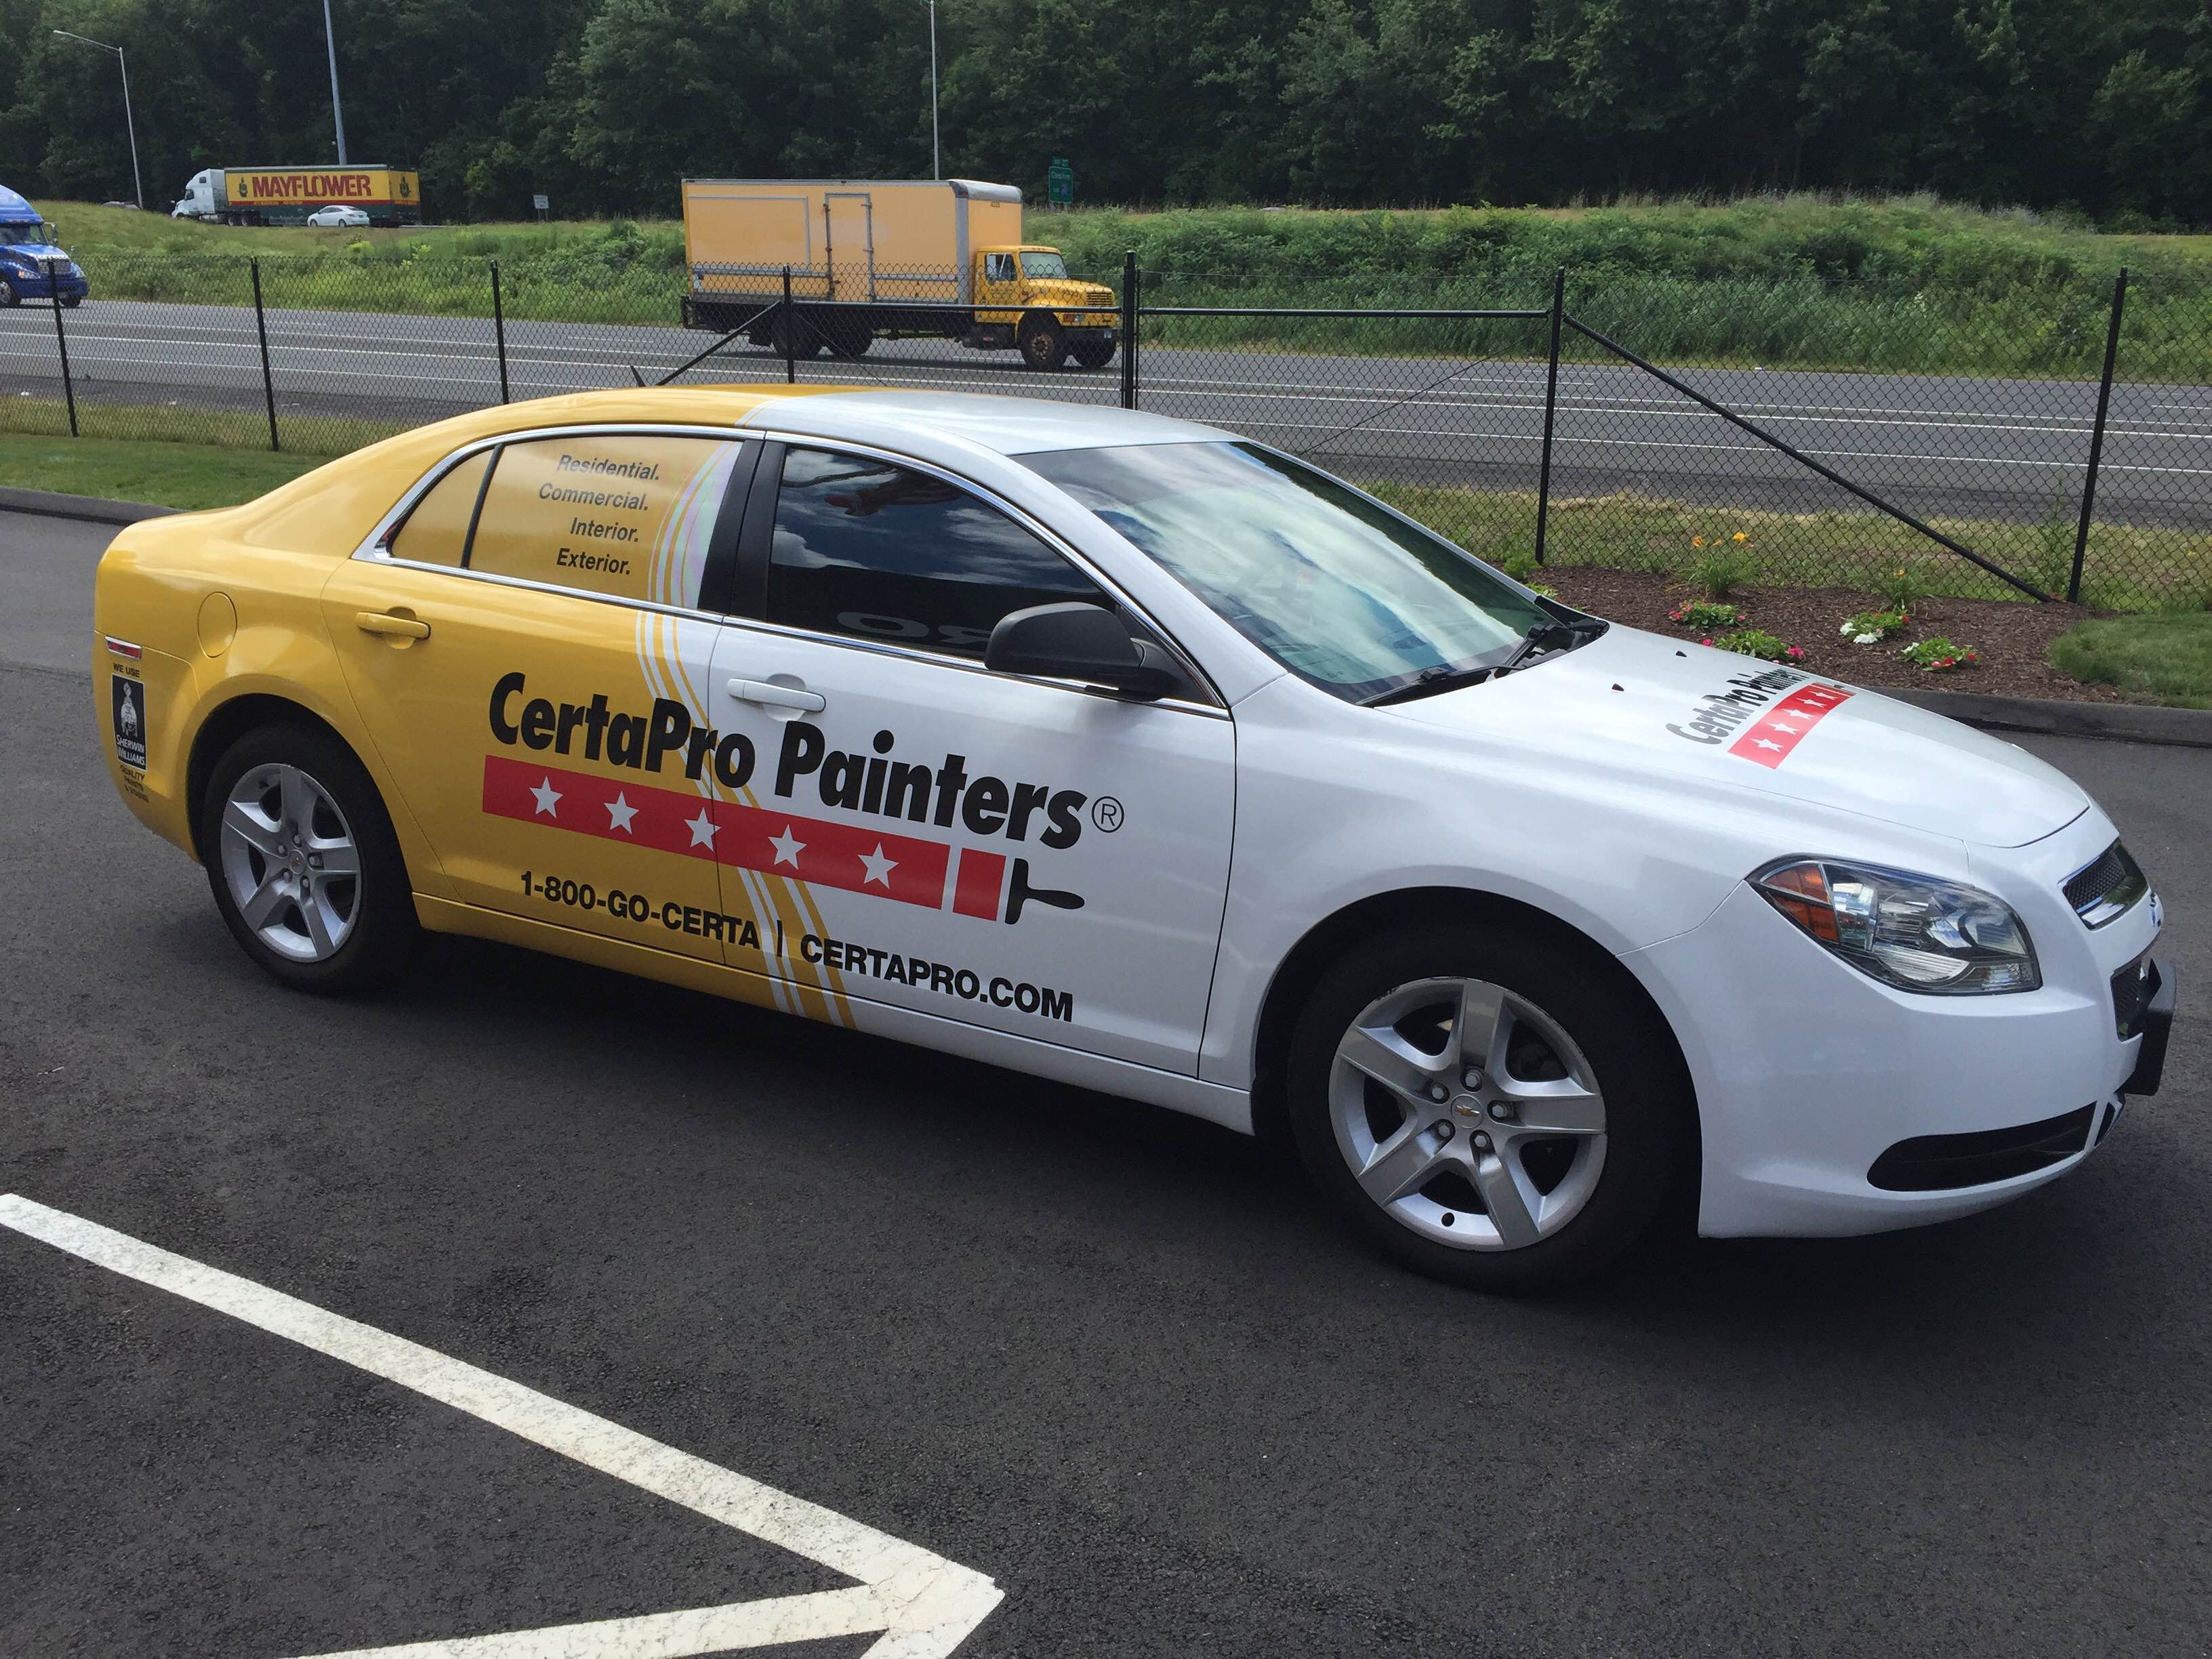 CertaPro Painters Vehicle Wraps Done By Sign Pro Inc